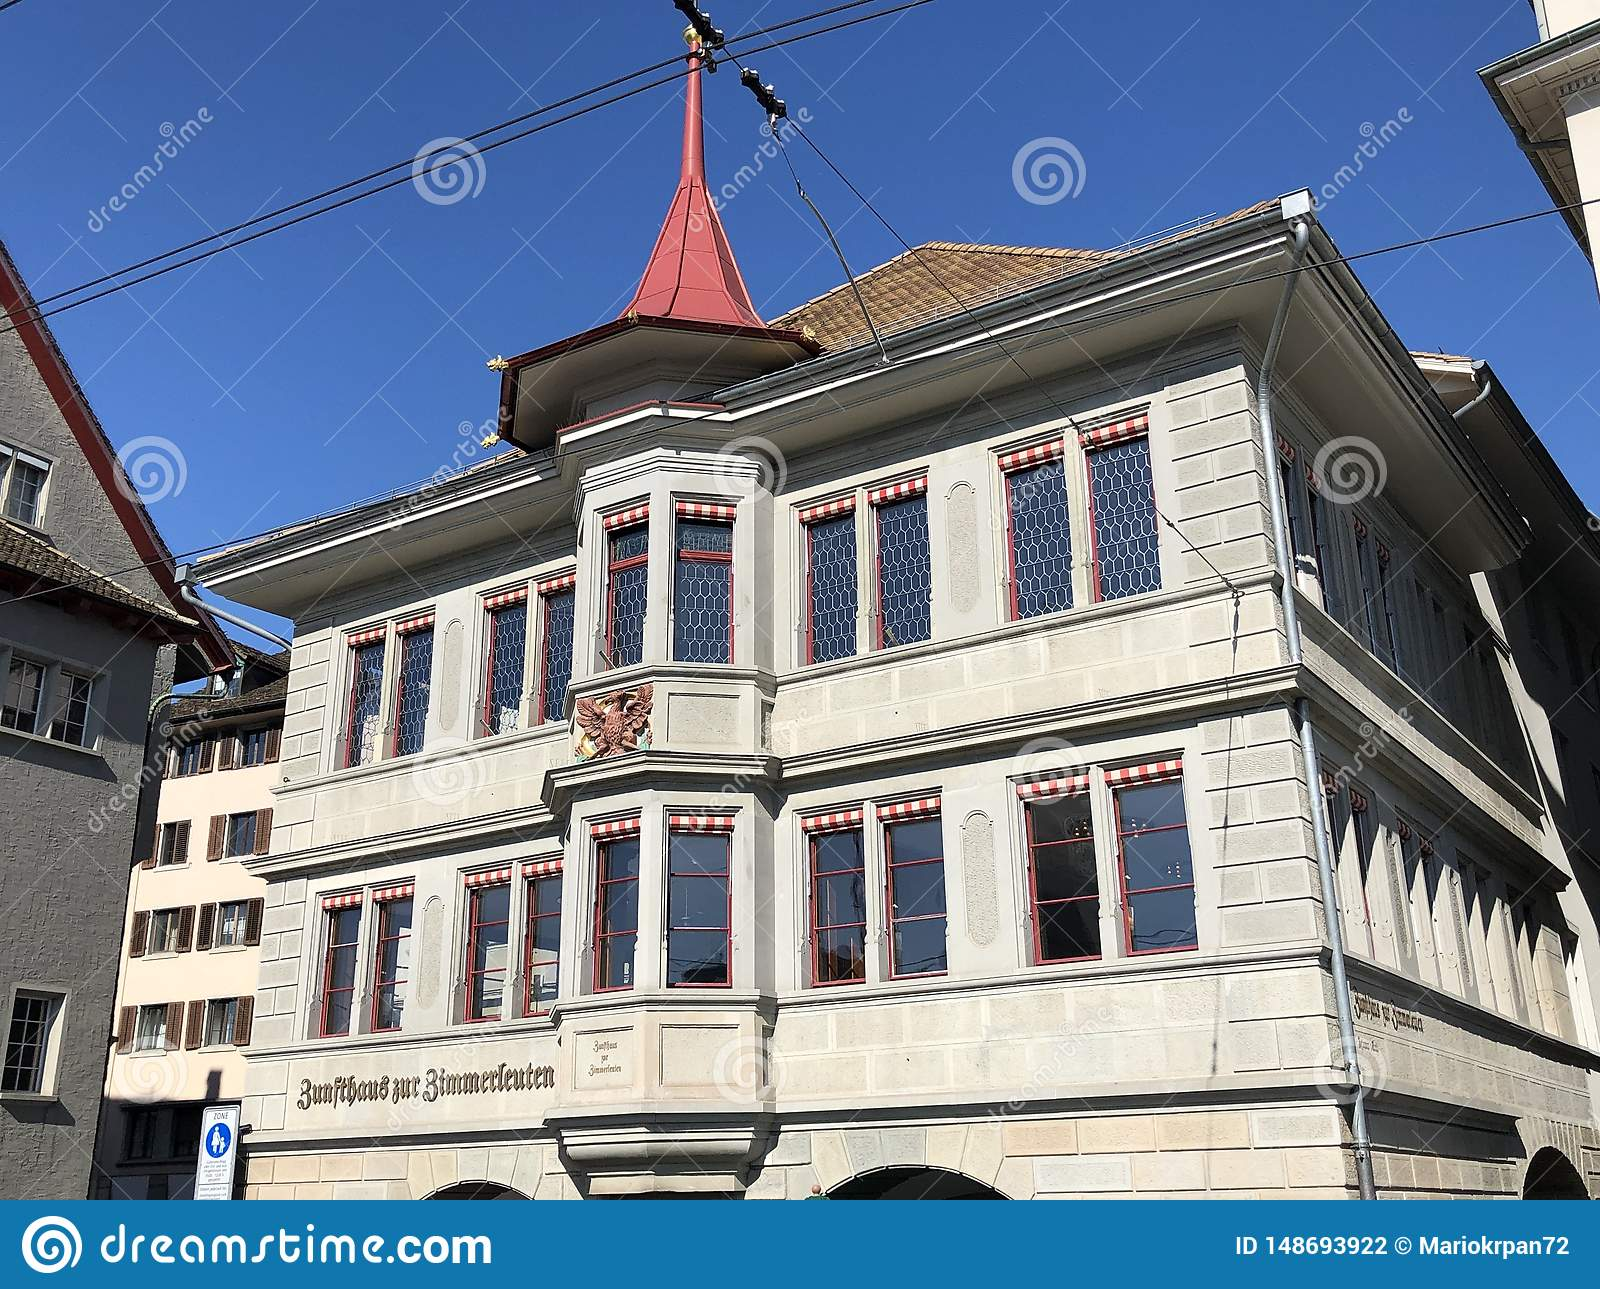 Traditional architecture and historic buildings in the Oldtown or Altstadt of Zurich